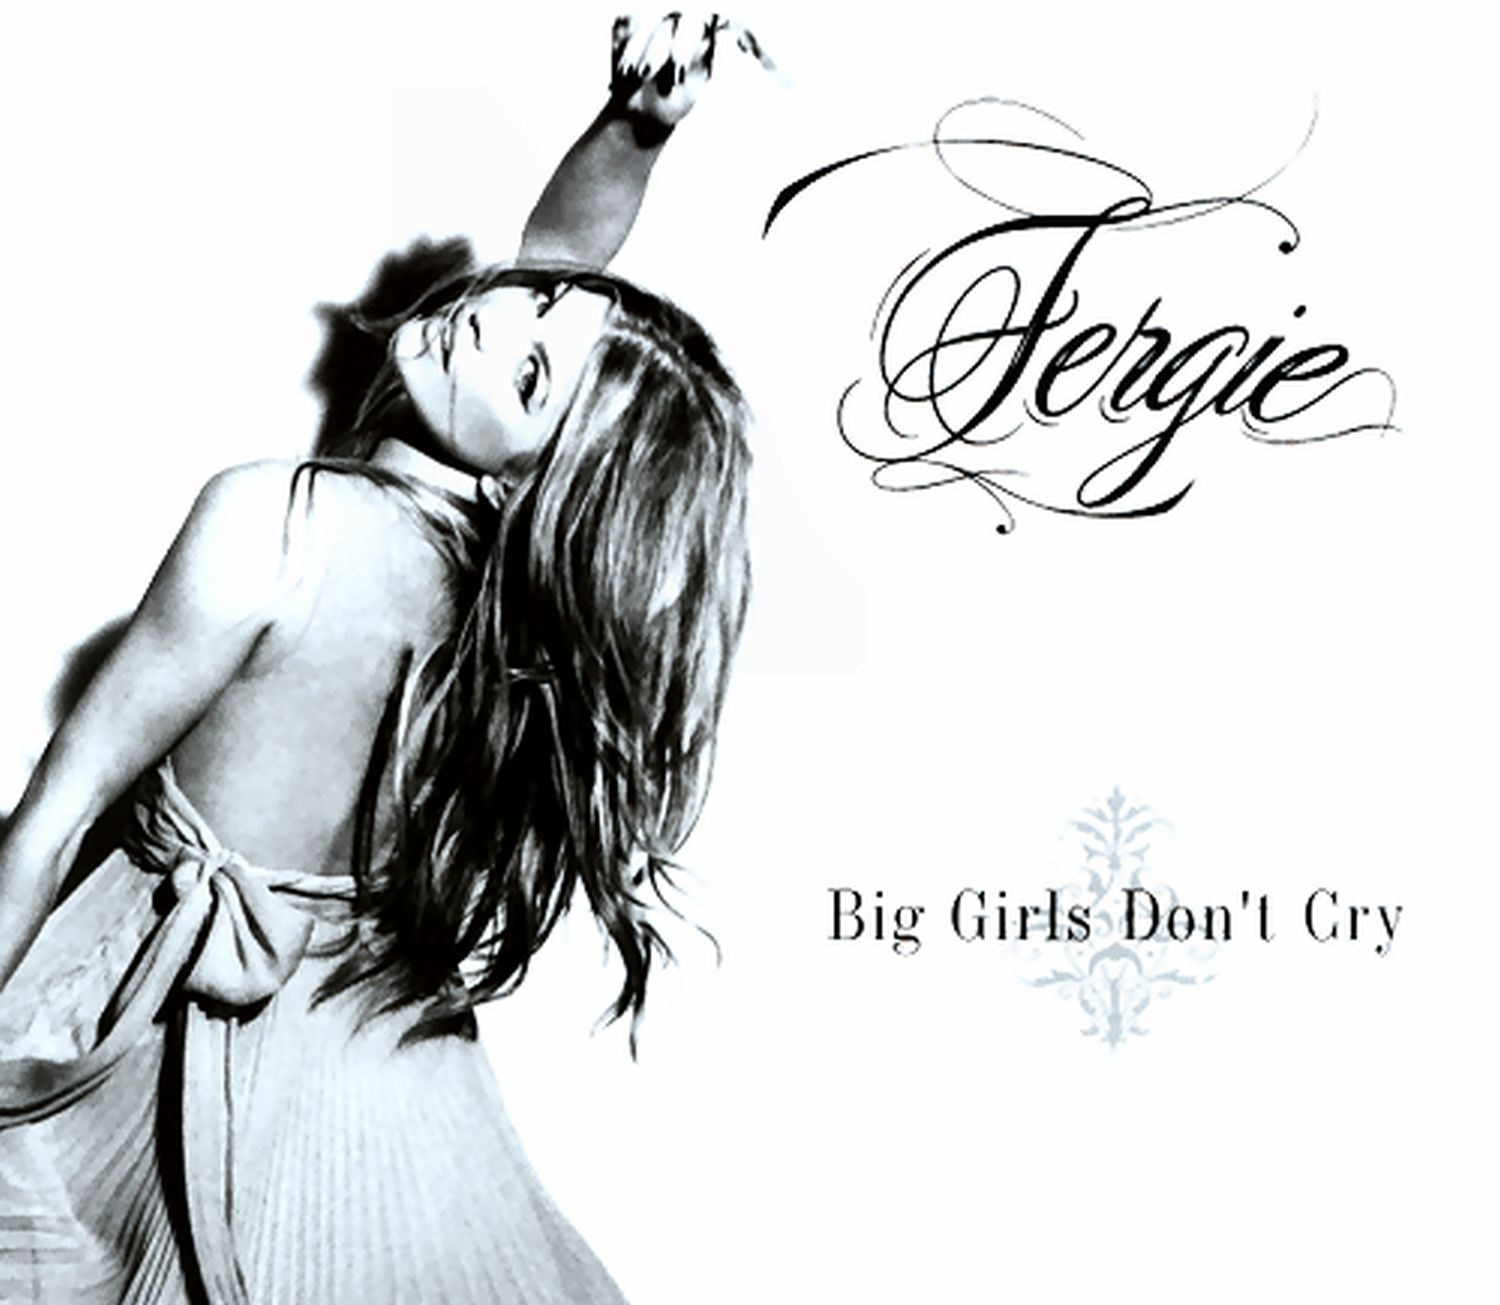 Cover: Big girls don't cry, Fergie